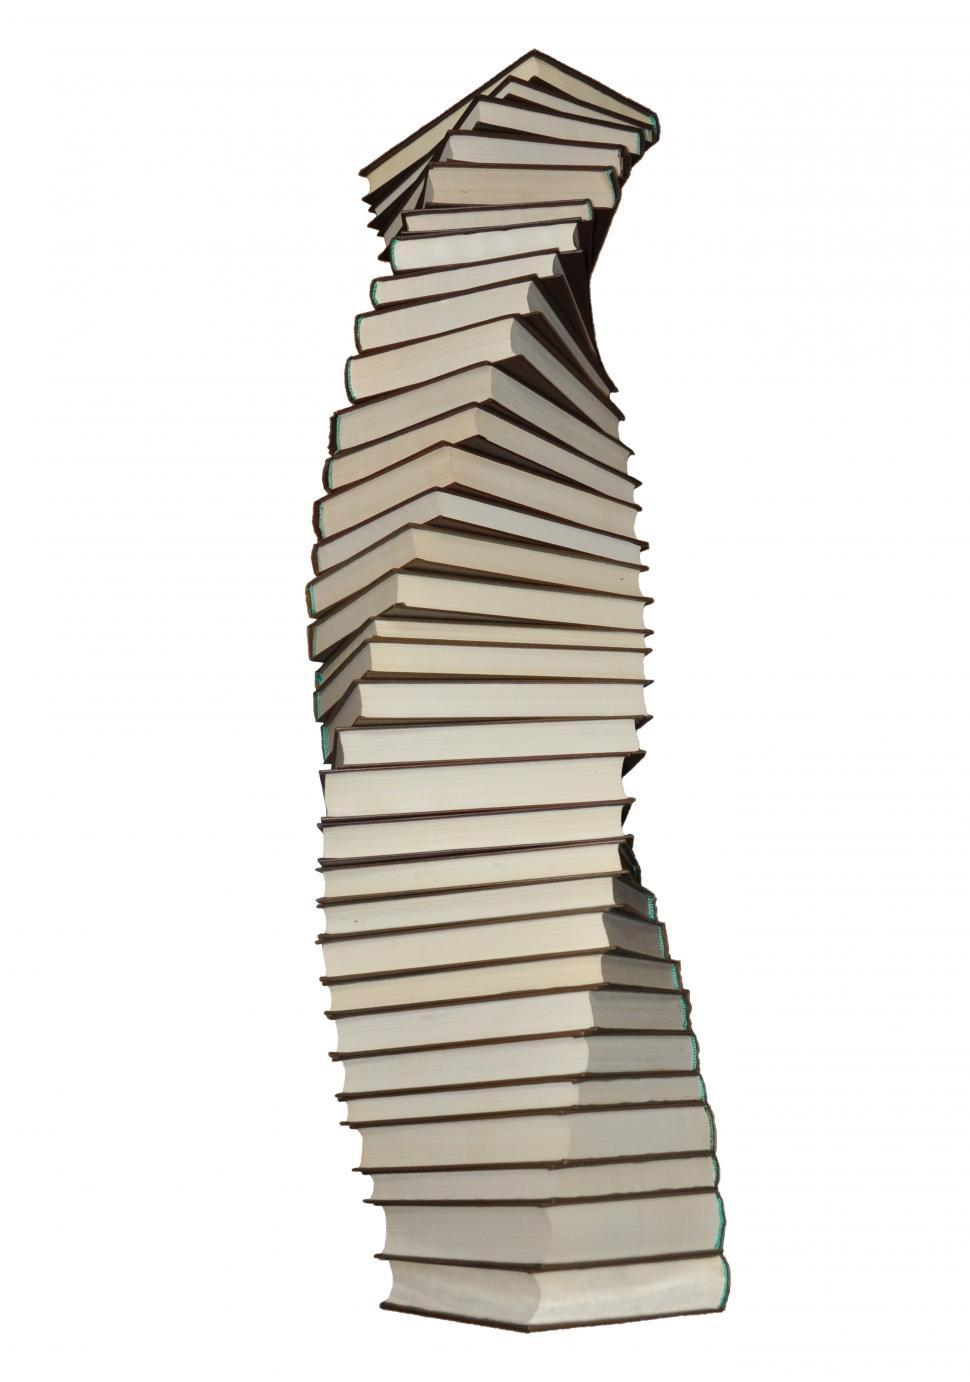 Download Free Stock HD Photo of Stack of spiraling books Online